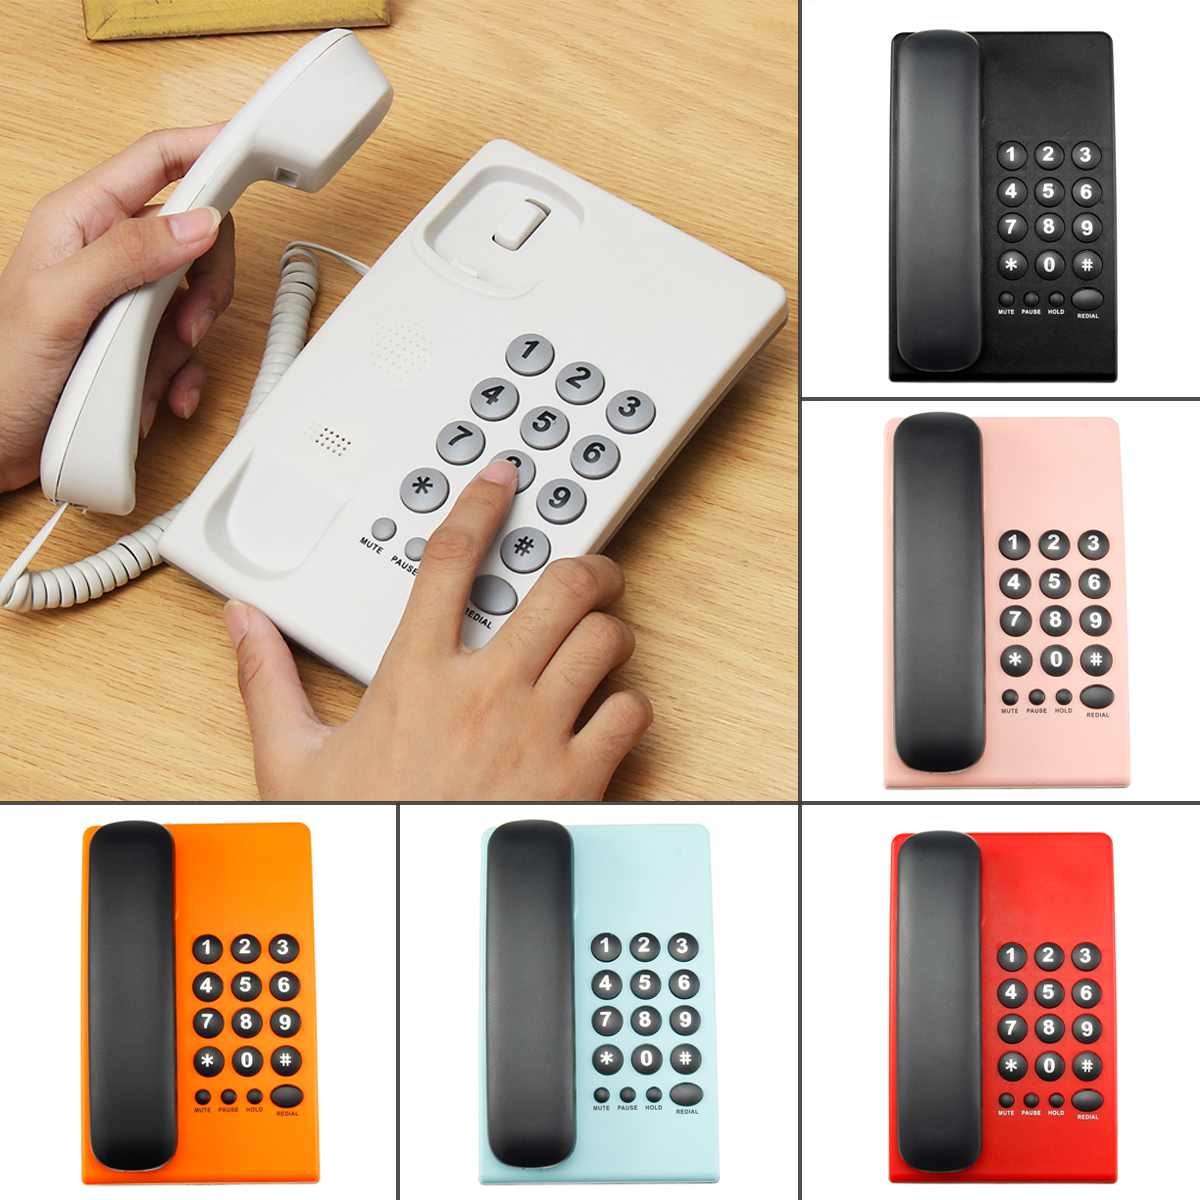 6 Colors Home Corded Phone Telephone Business Home Office Wall Mount Desktop Phone Redial Mute Pause function